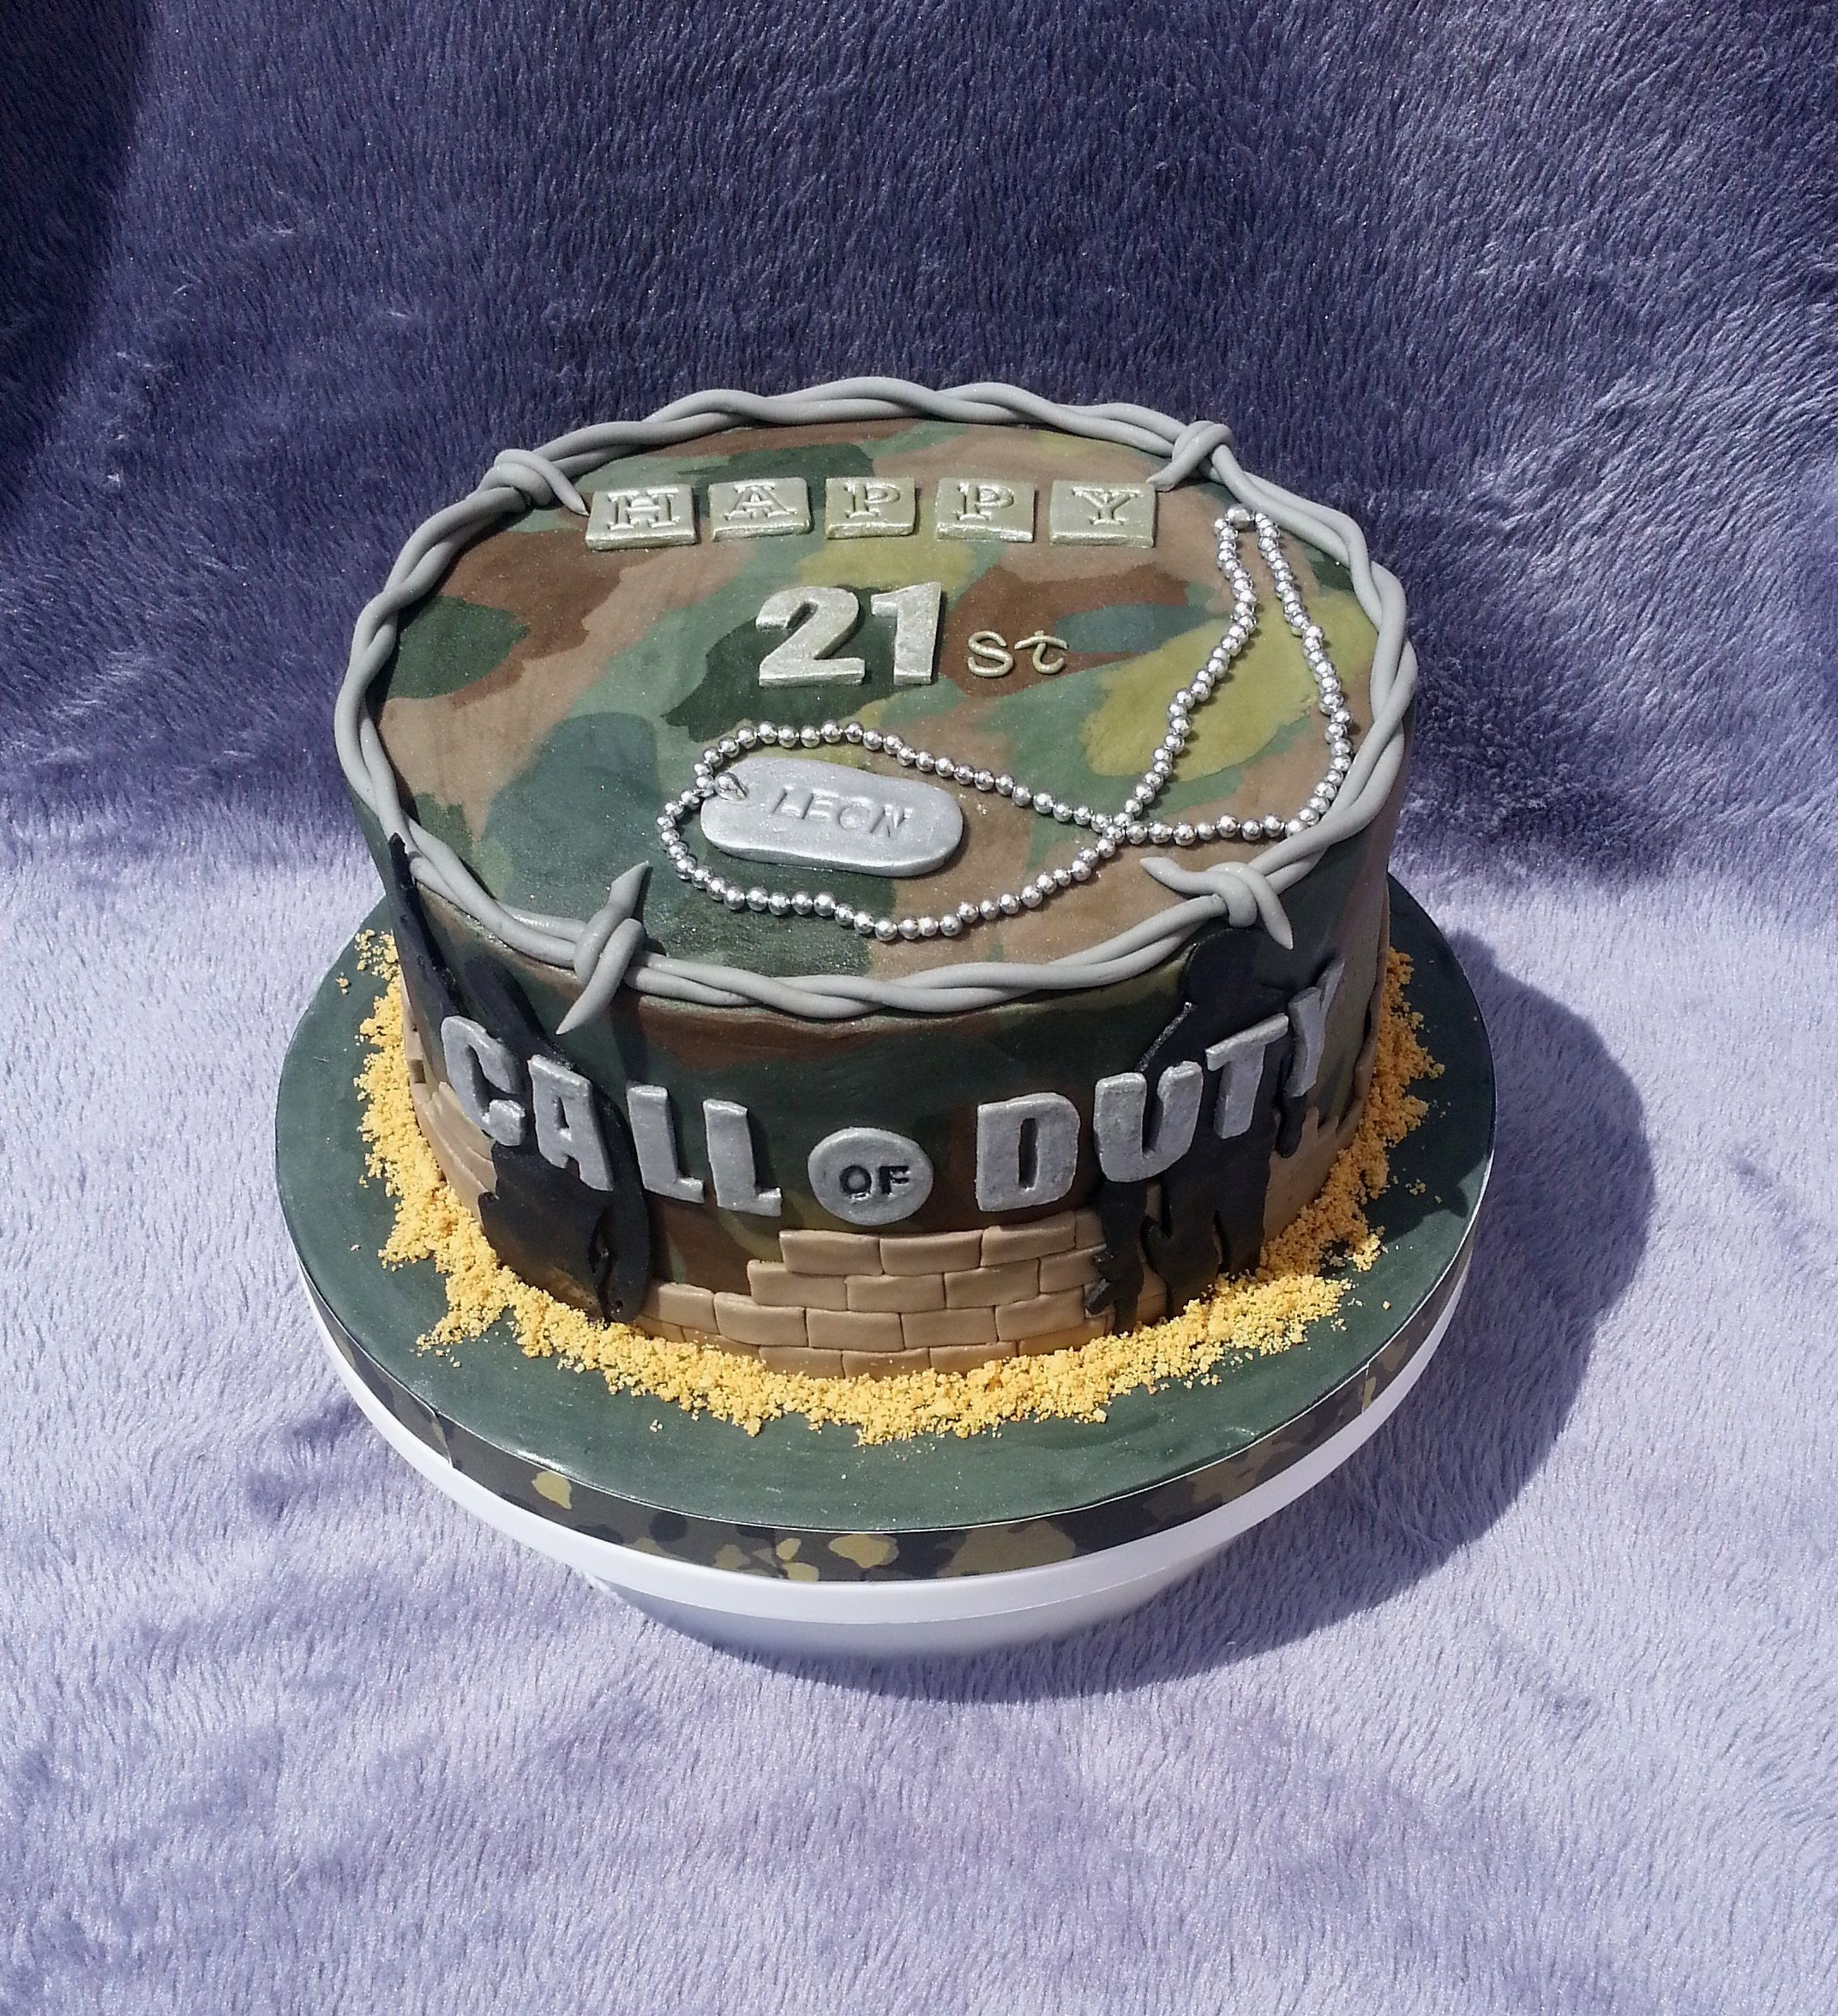 Call of Duty Cake Call of duty cakes, Army birthday